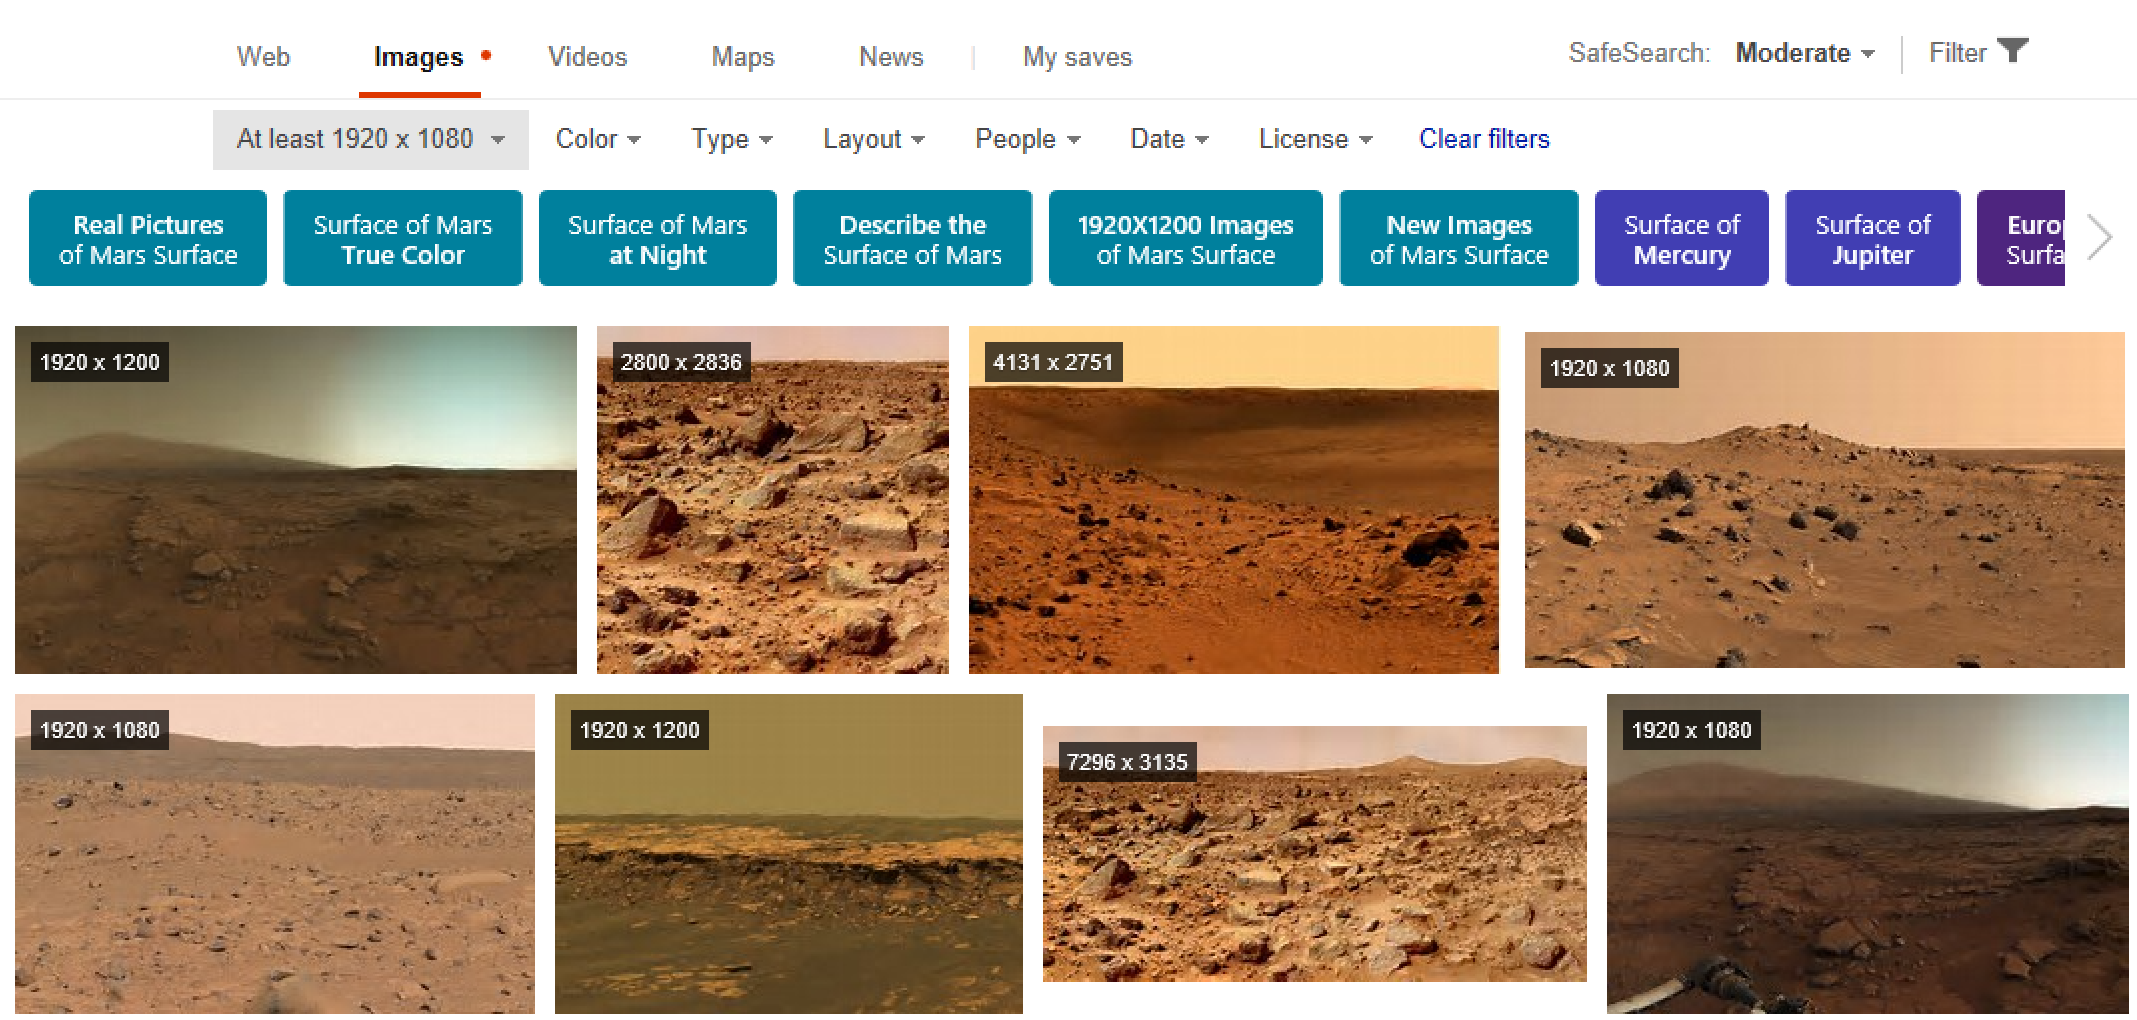 surface of mars bing image search with dimensions shown